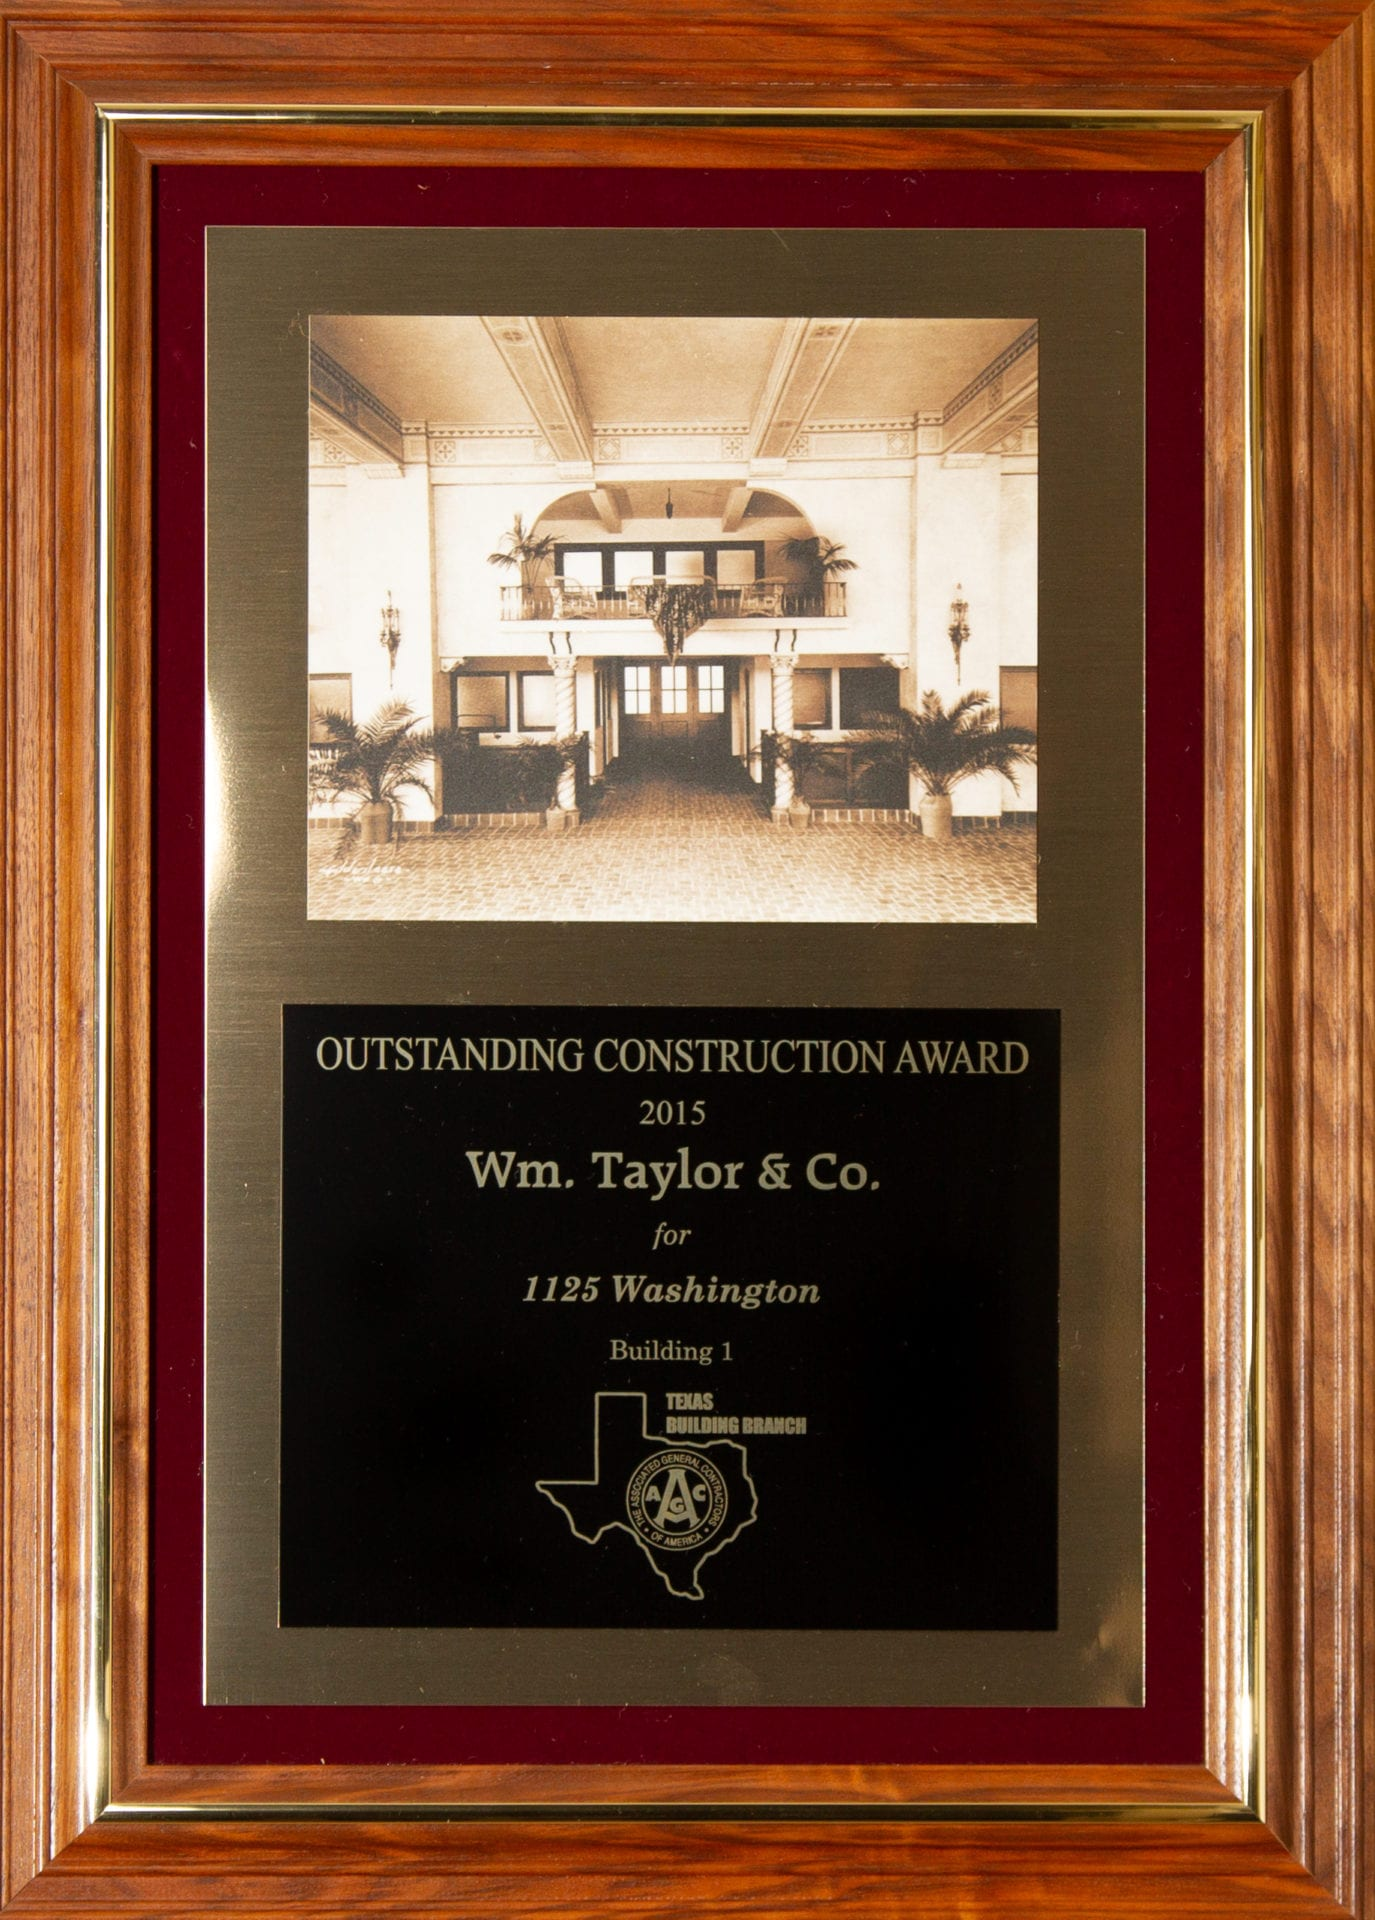 Wm. Taylor & Co. General Contractors - Outstanding Construction Award 2015